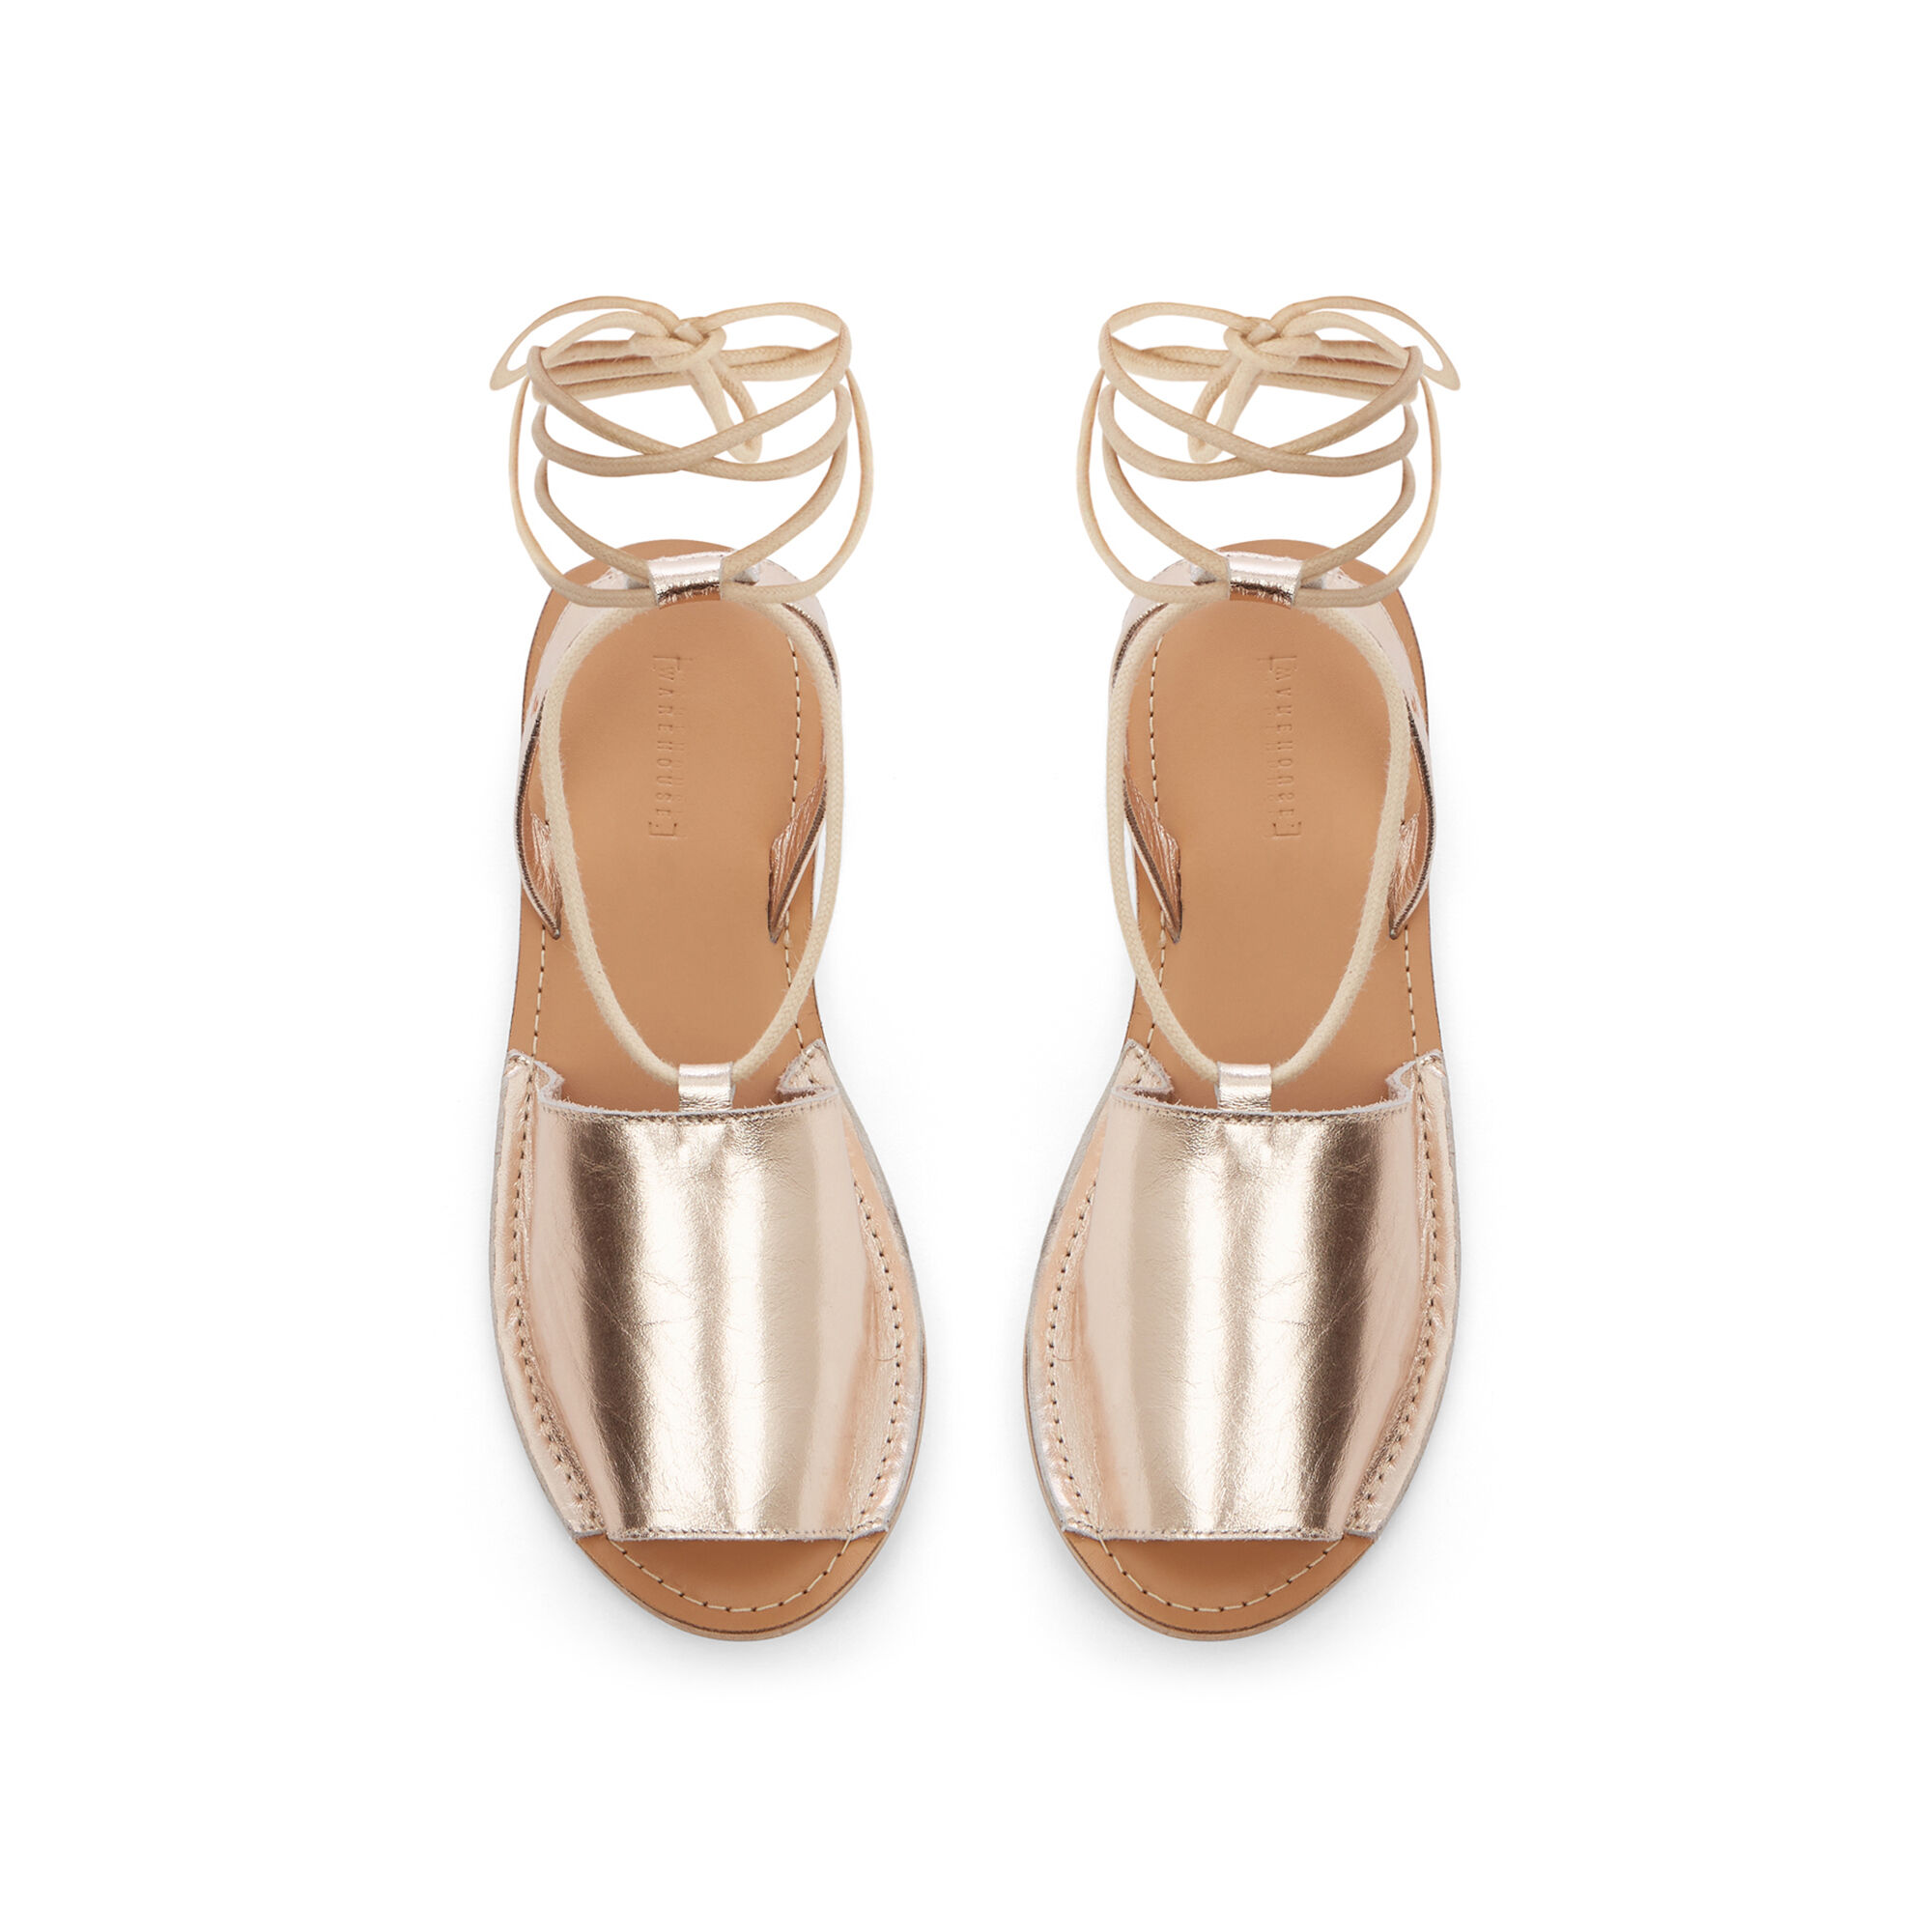 Warehouse, LACE UP 2 PART SANDAL Gold Colour 1